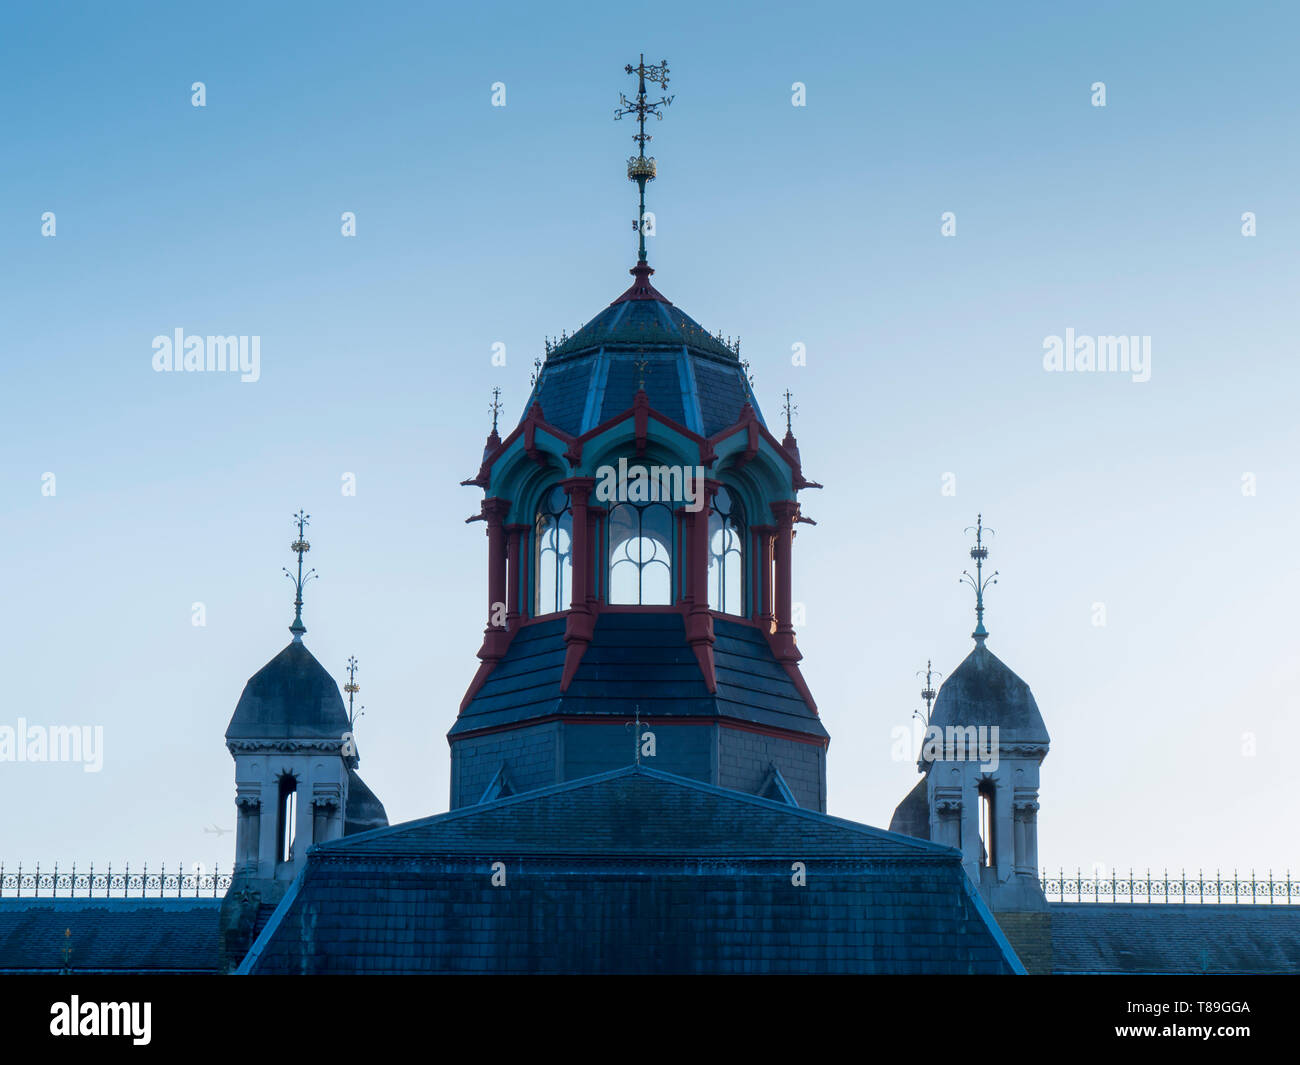 Europe, UK, England, London, Stratford Abbey Mills Pumping Station - Stock Image